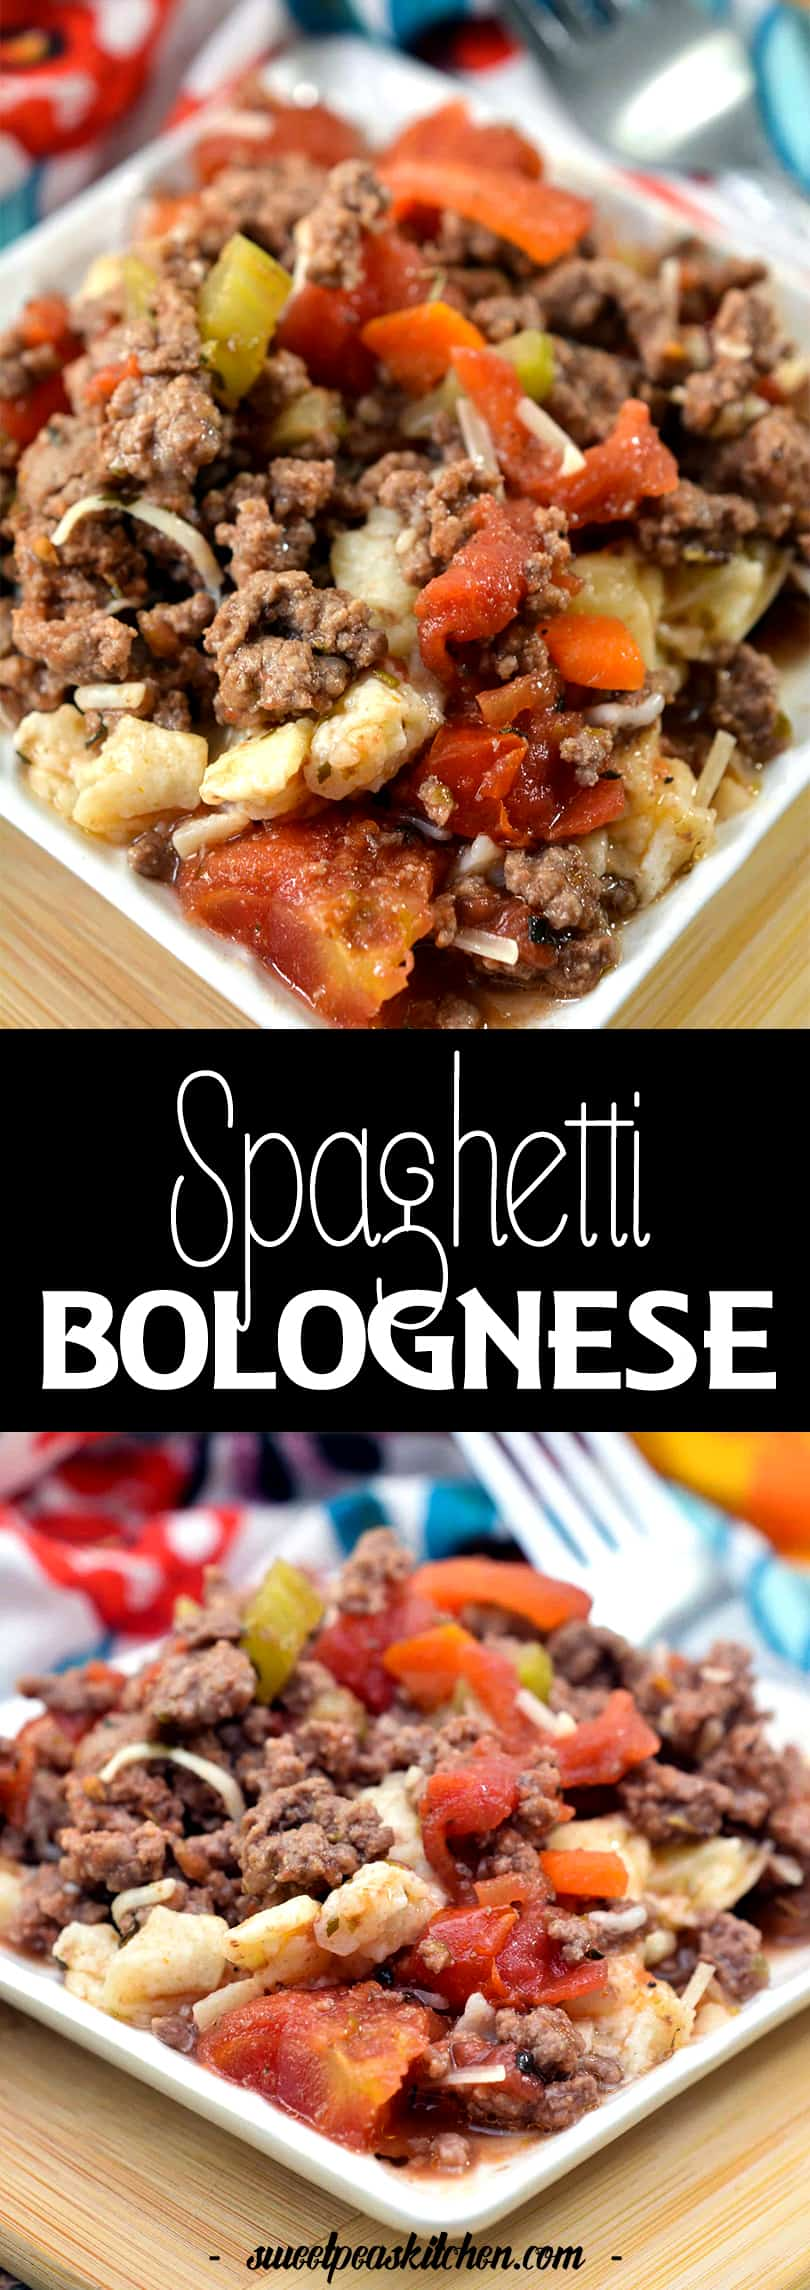 Simple Bolognese Recipe